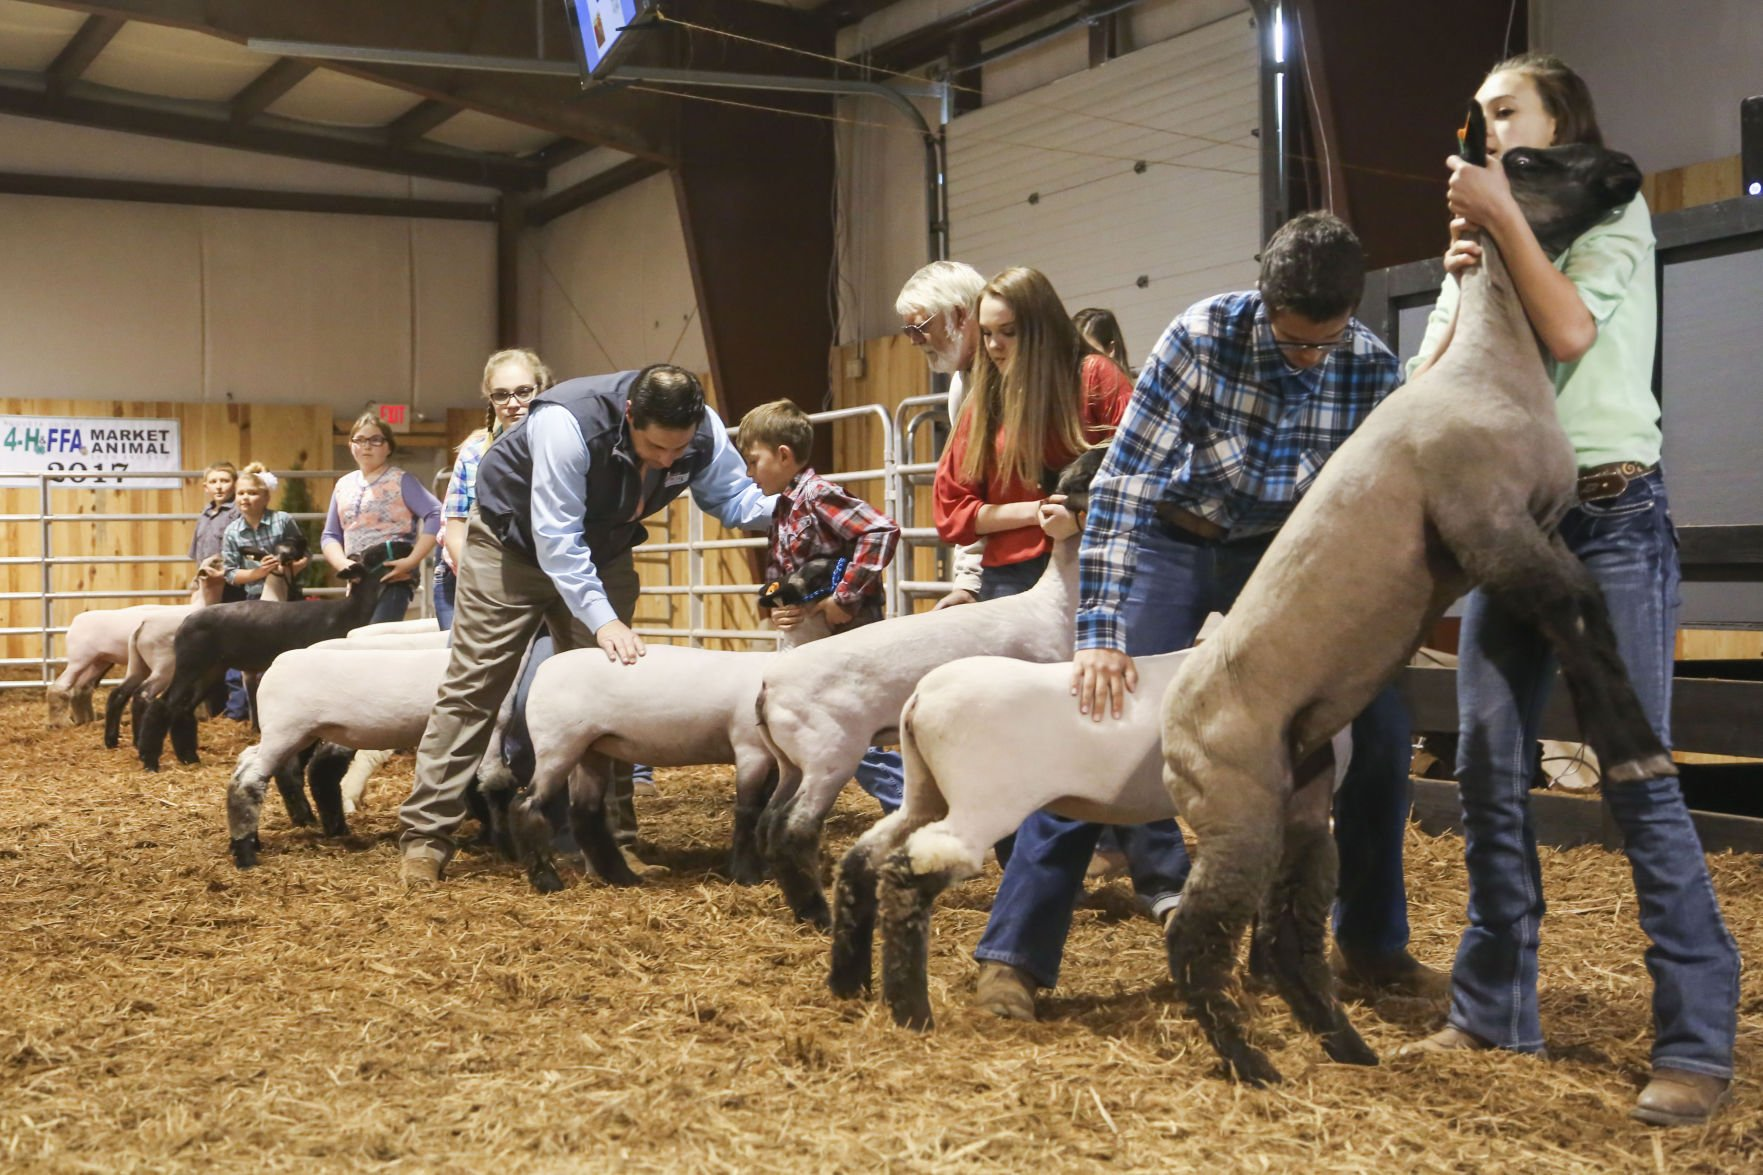 On the lamb: Months of caring for animals pays off for young ...